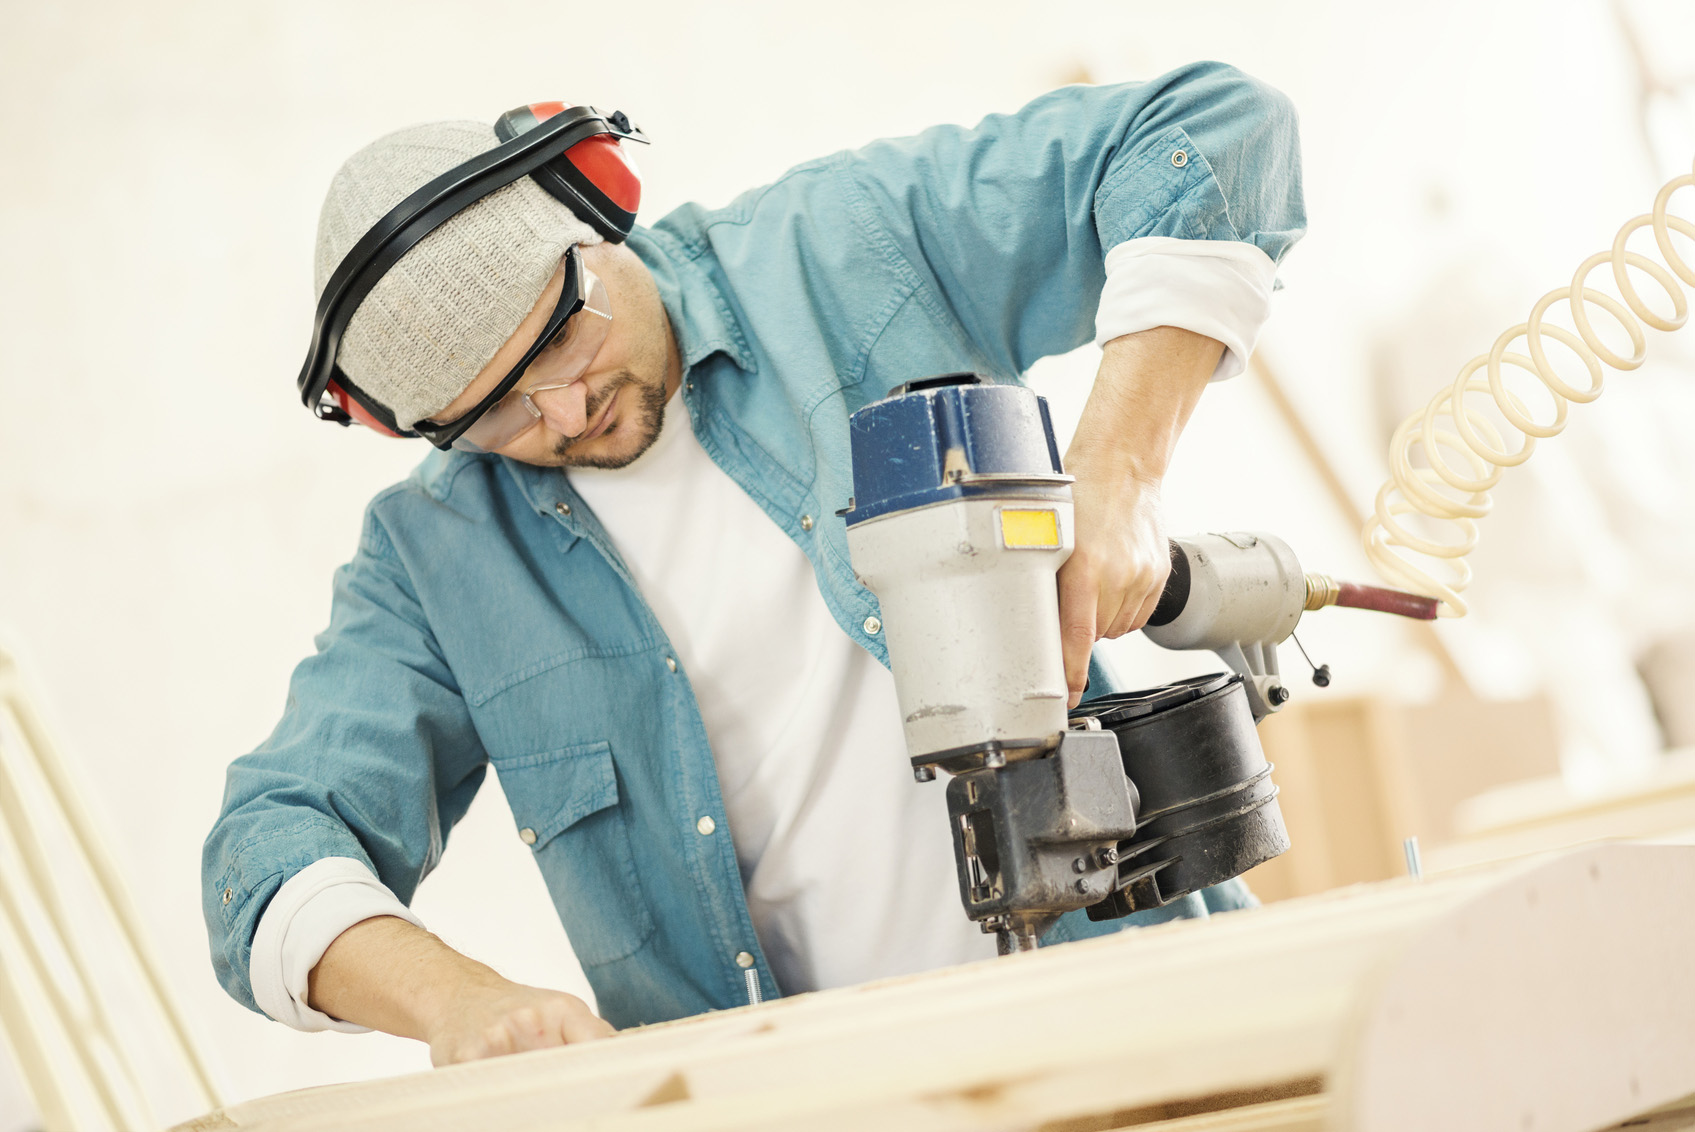 How to Prevent Nail Gun Injuries